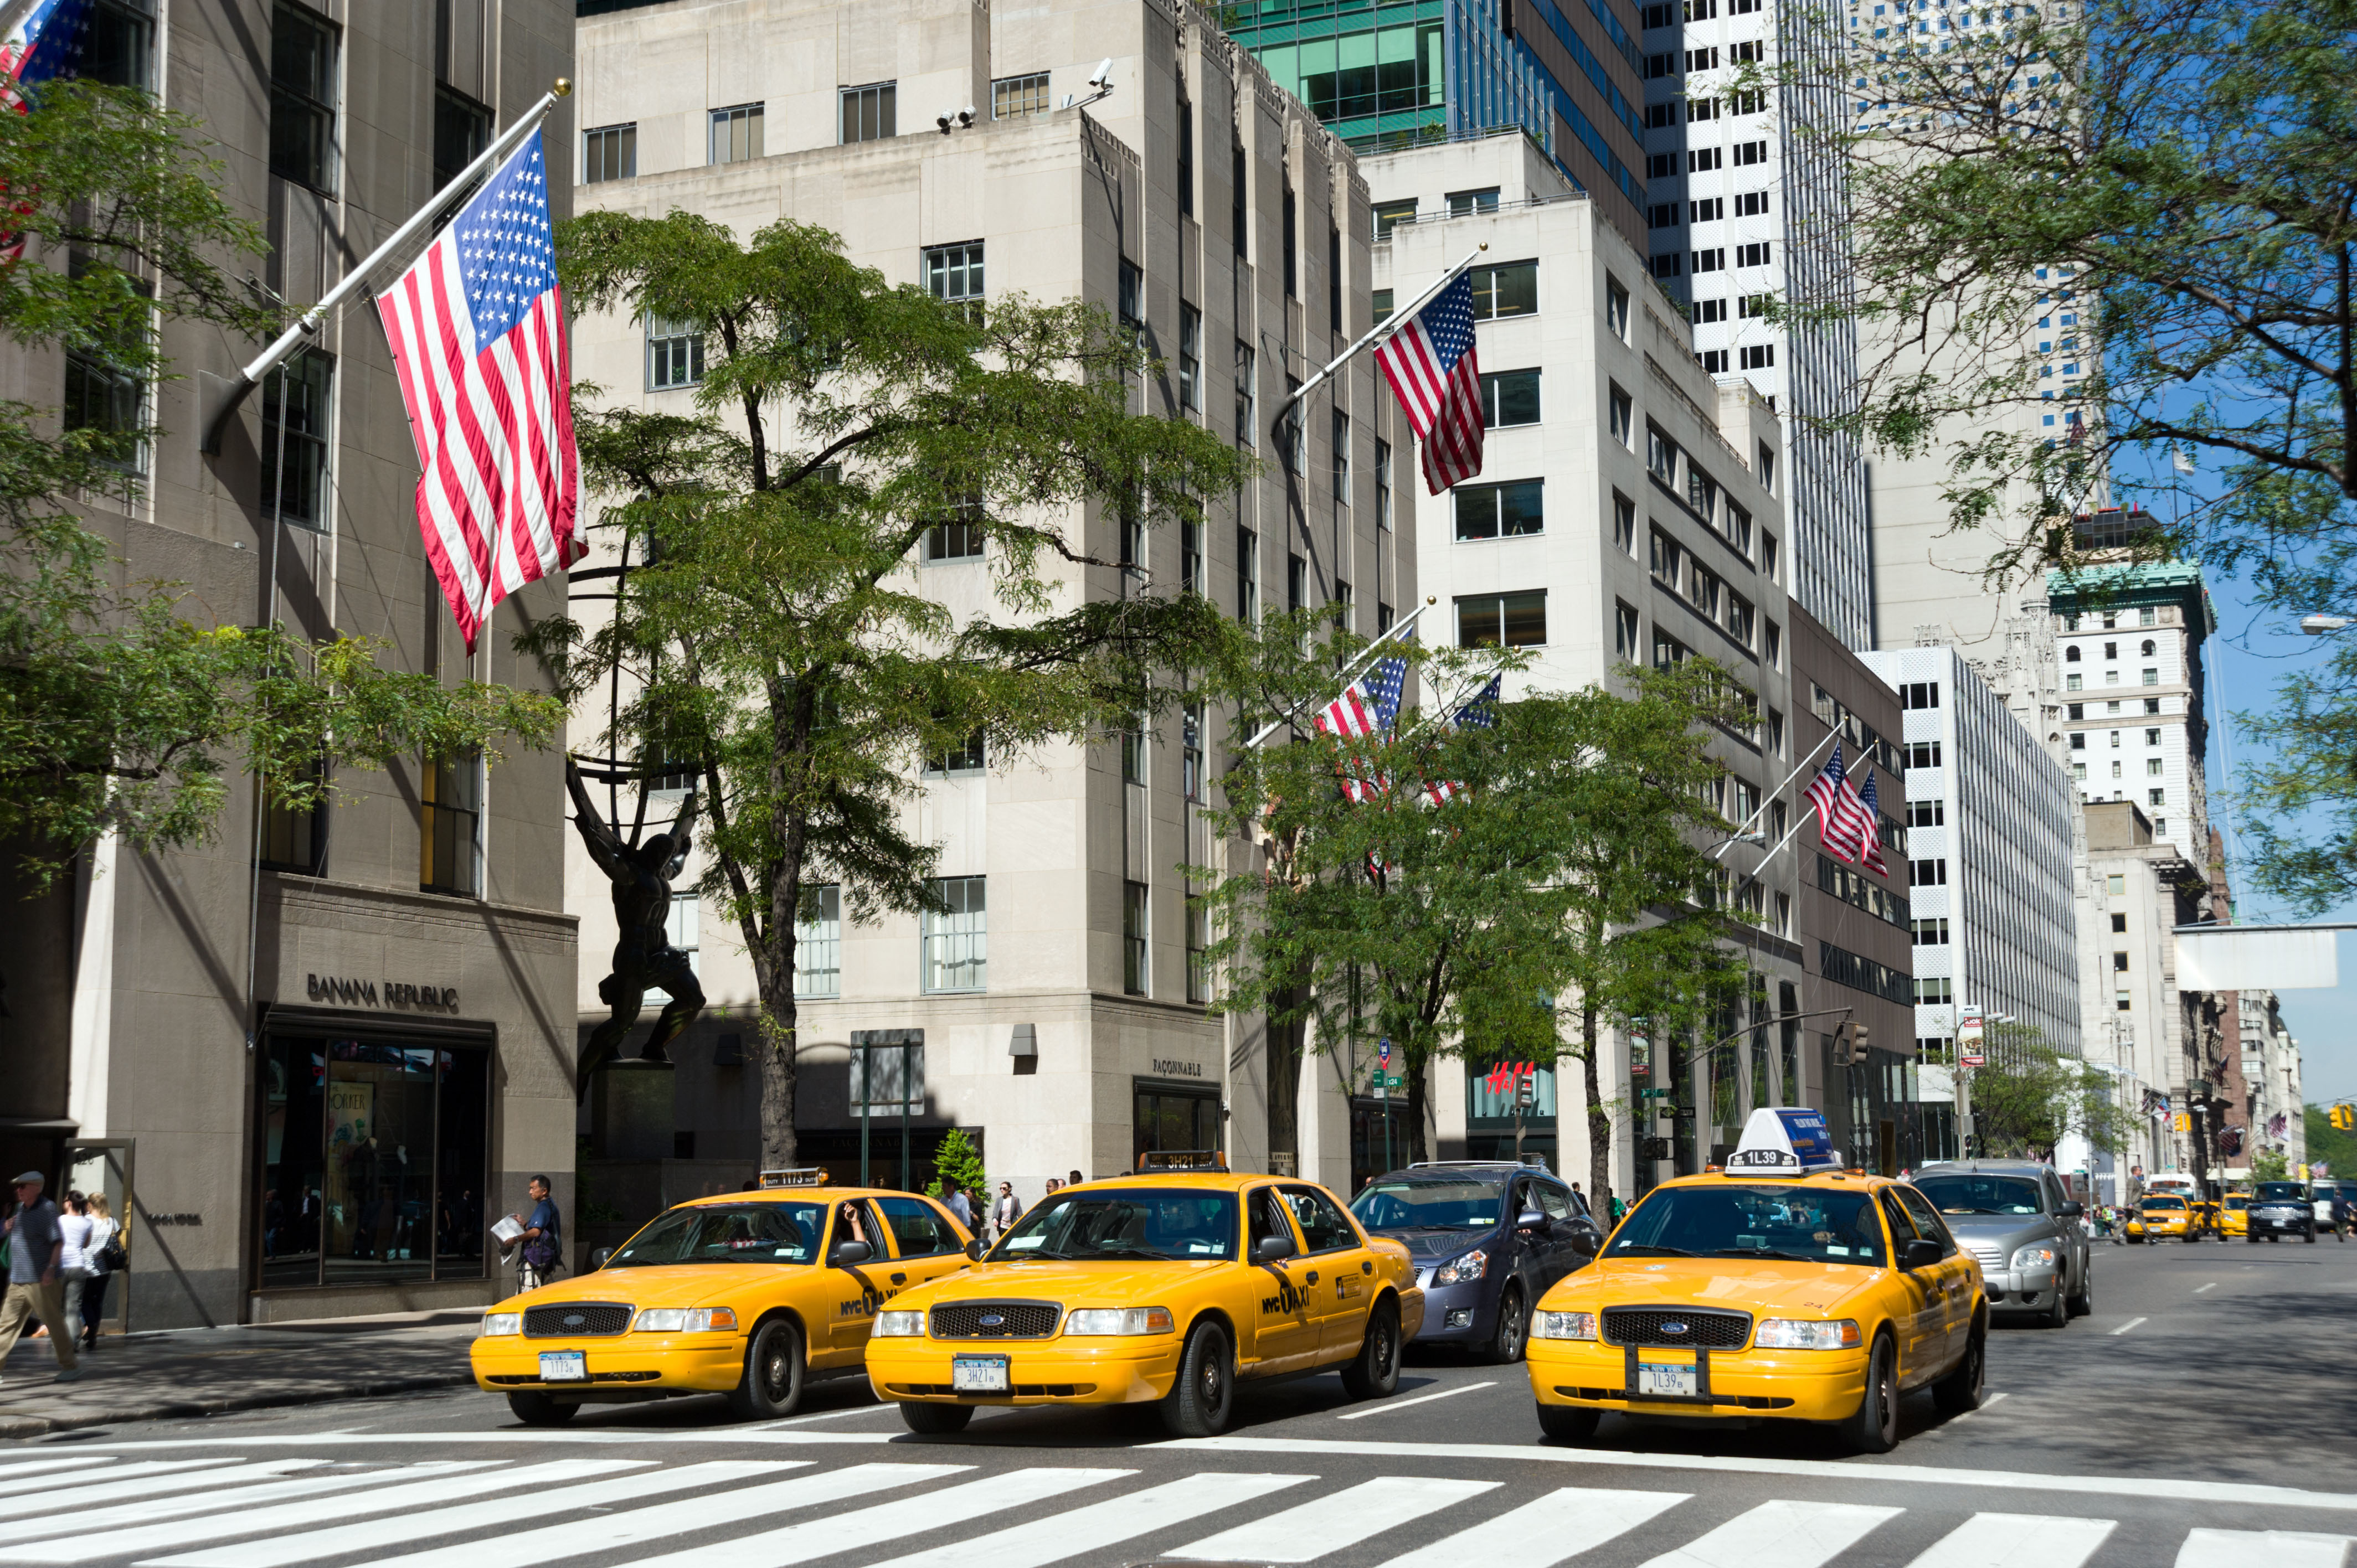 Taxis on Fifth Avenue, New York City streets, USA